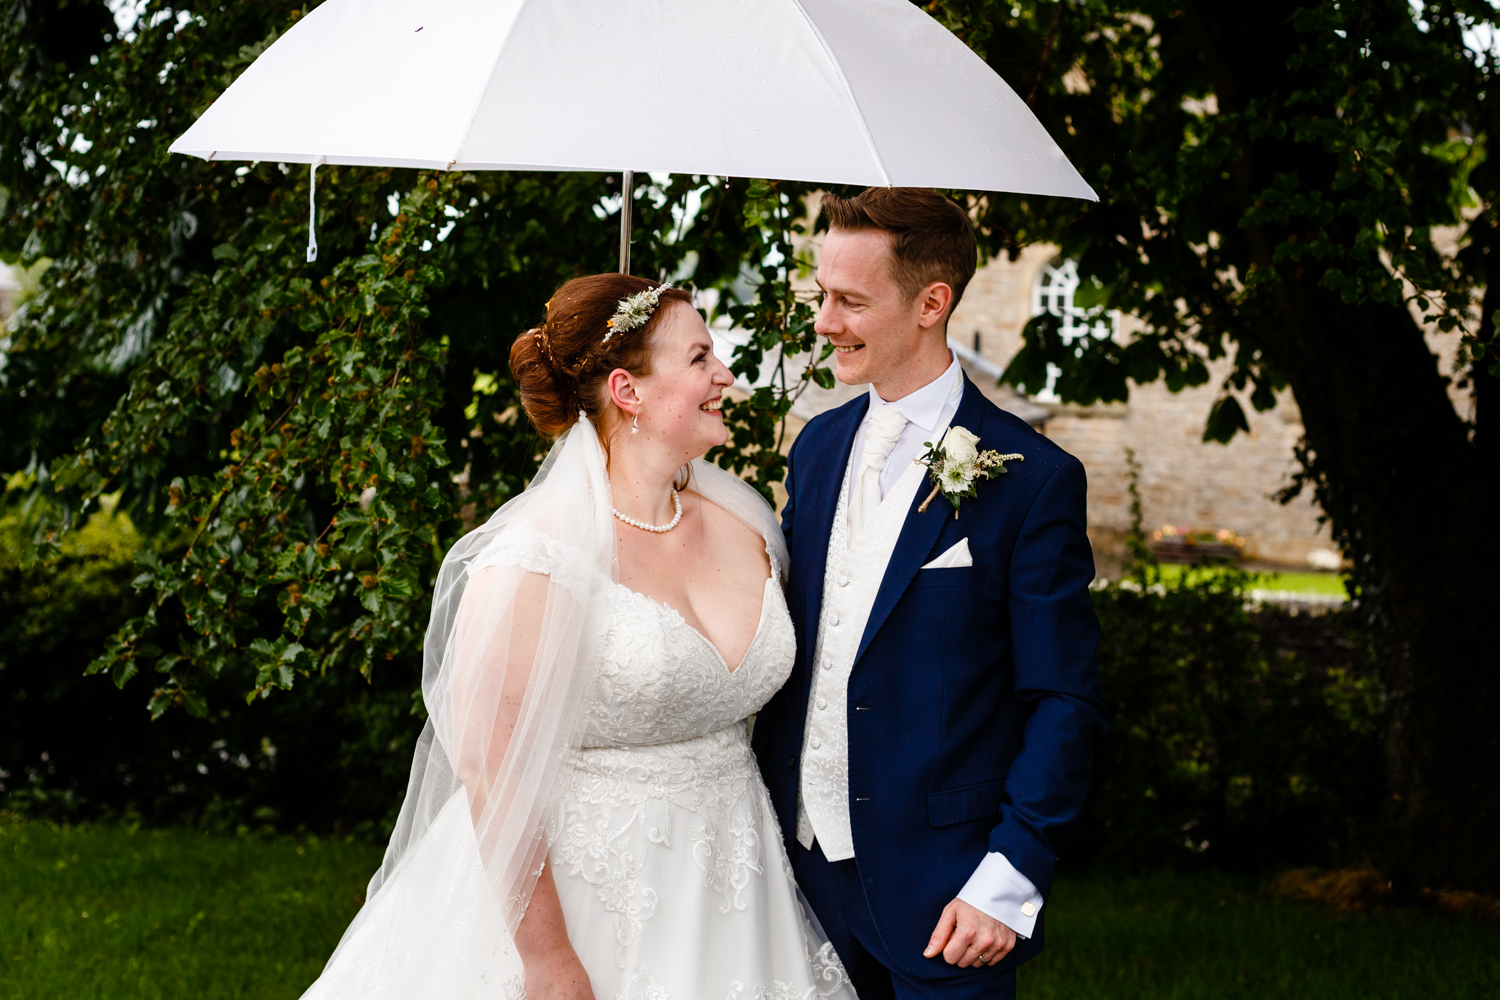 Lancashire-wedding-photographer-adele-and-alex-088.jpg